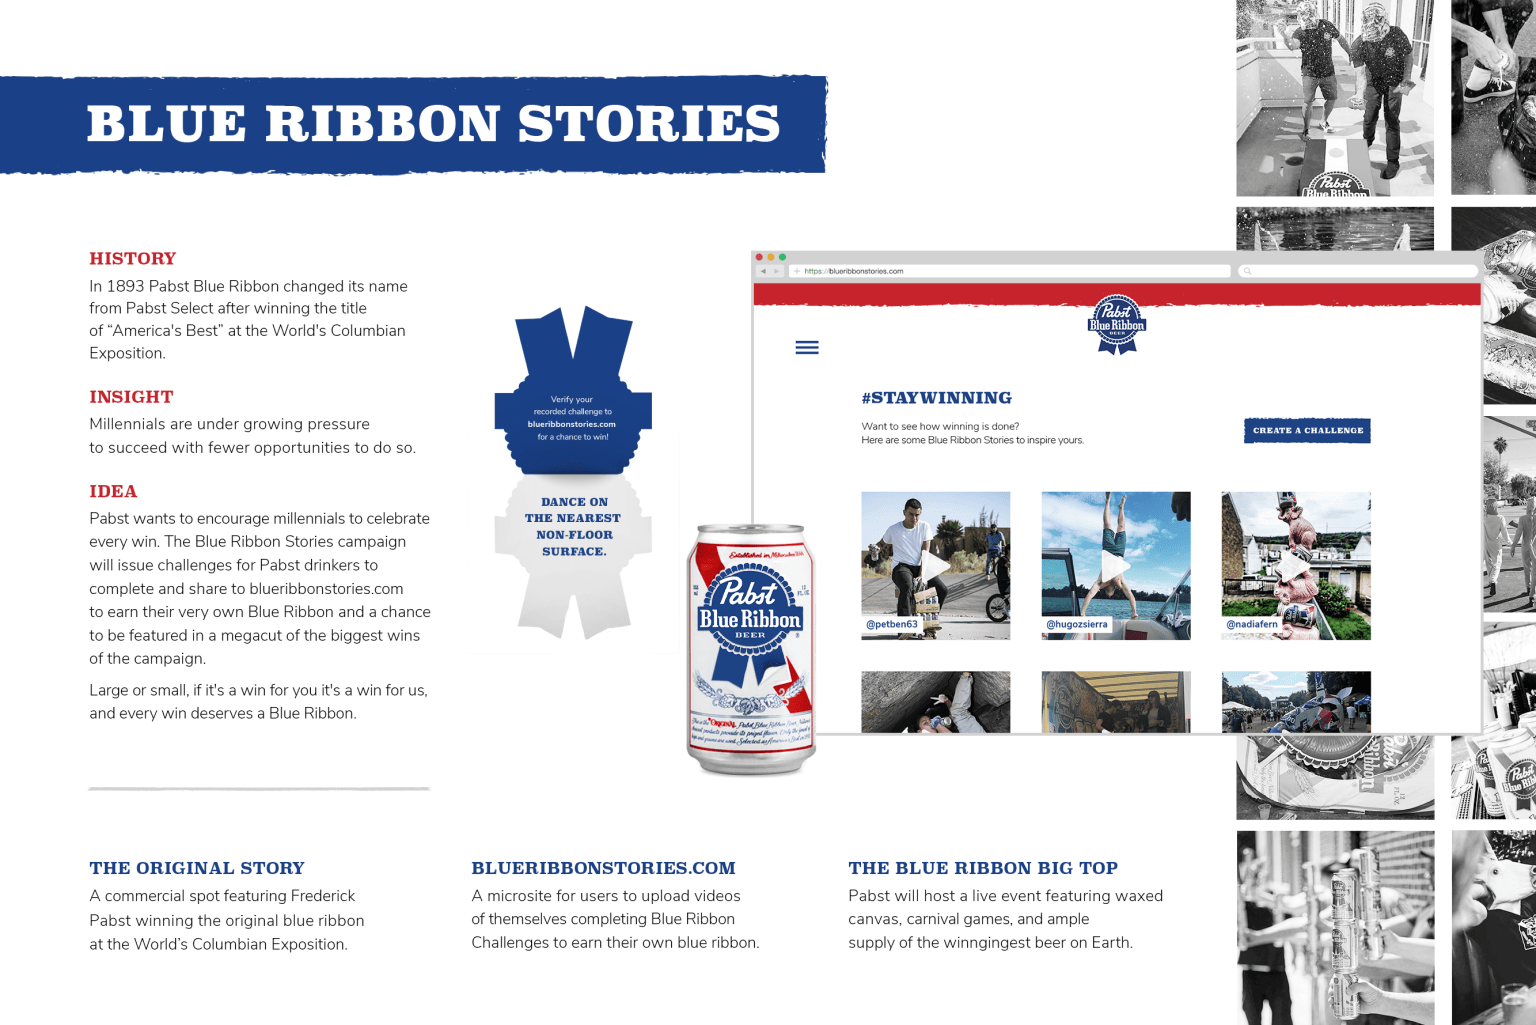 PBR: Blue Ribbon Stories